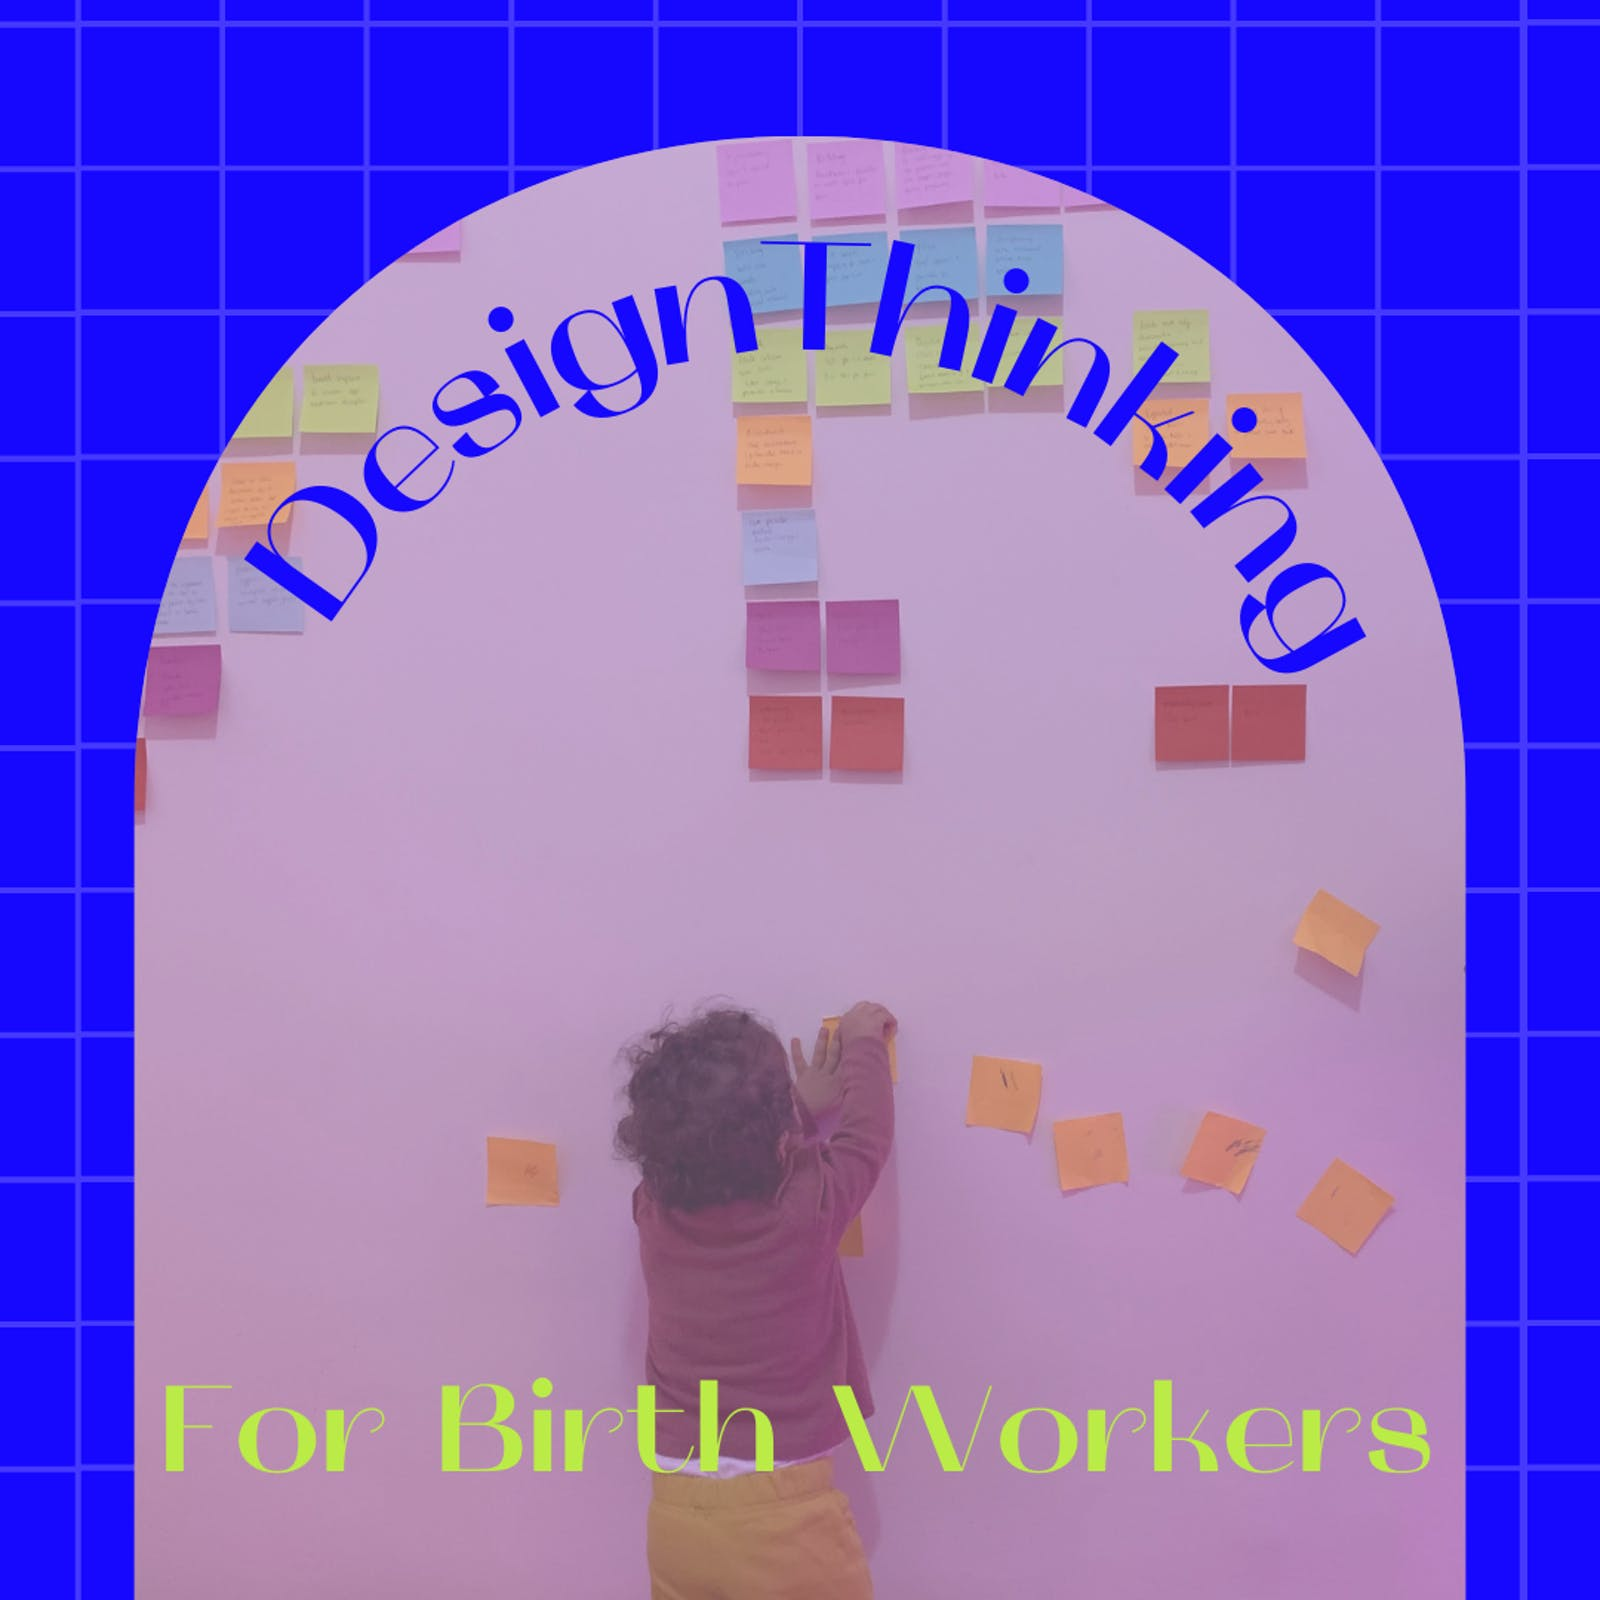 Design Thinking for Birth Workers